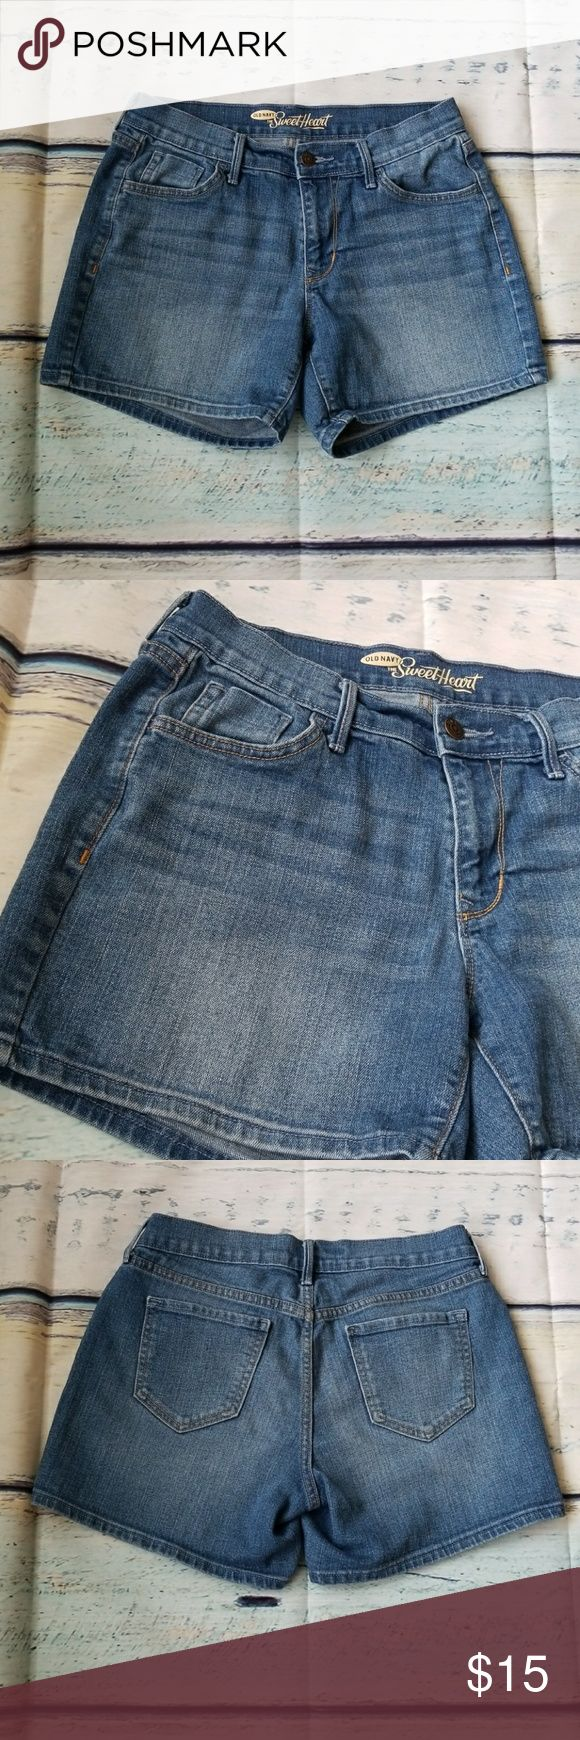 """{Old Navy} The Sweetheart Denim Shorts In gently used condition. Very nice shorts.  Waist: 15"""" Length: 13"""" Old Navy Shorts Jean Shorts"""